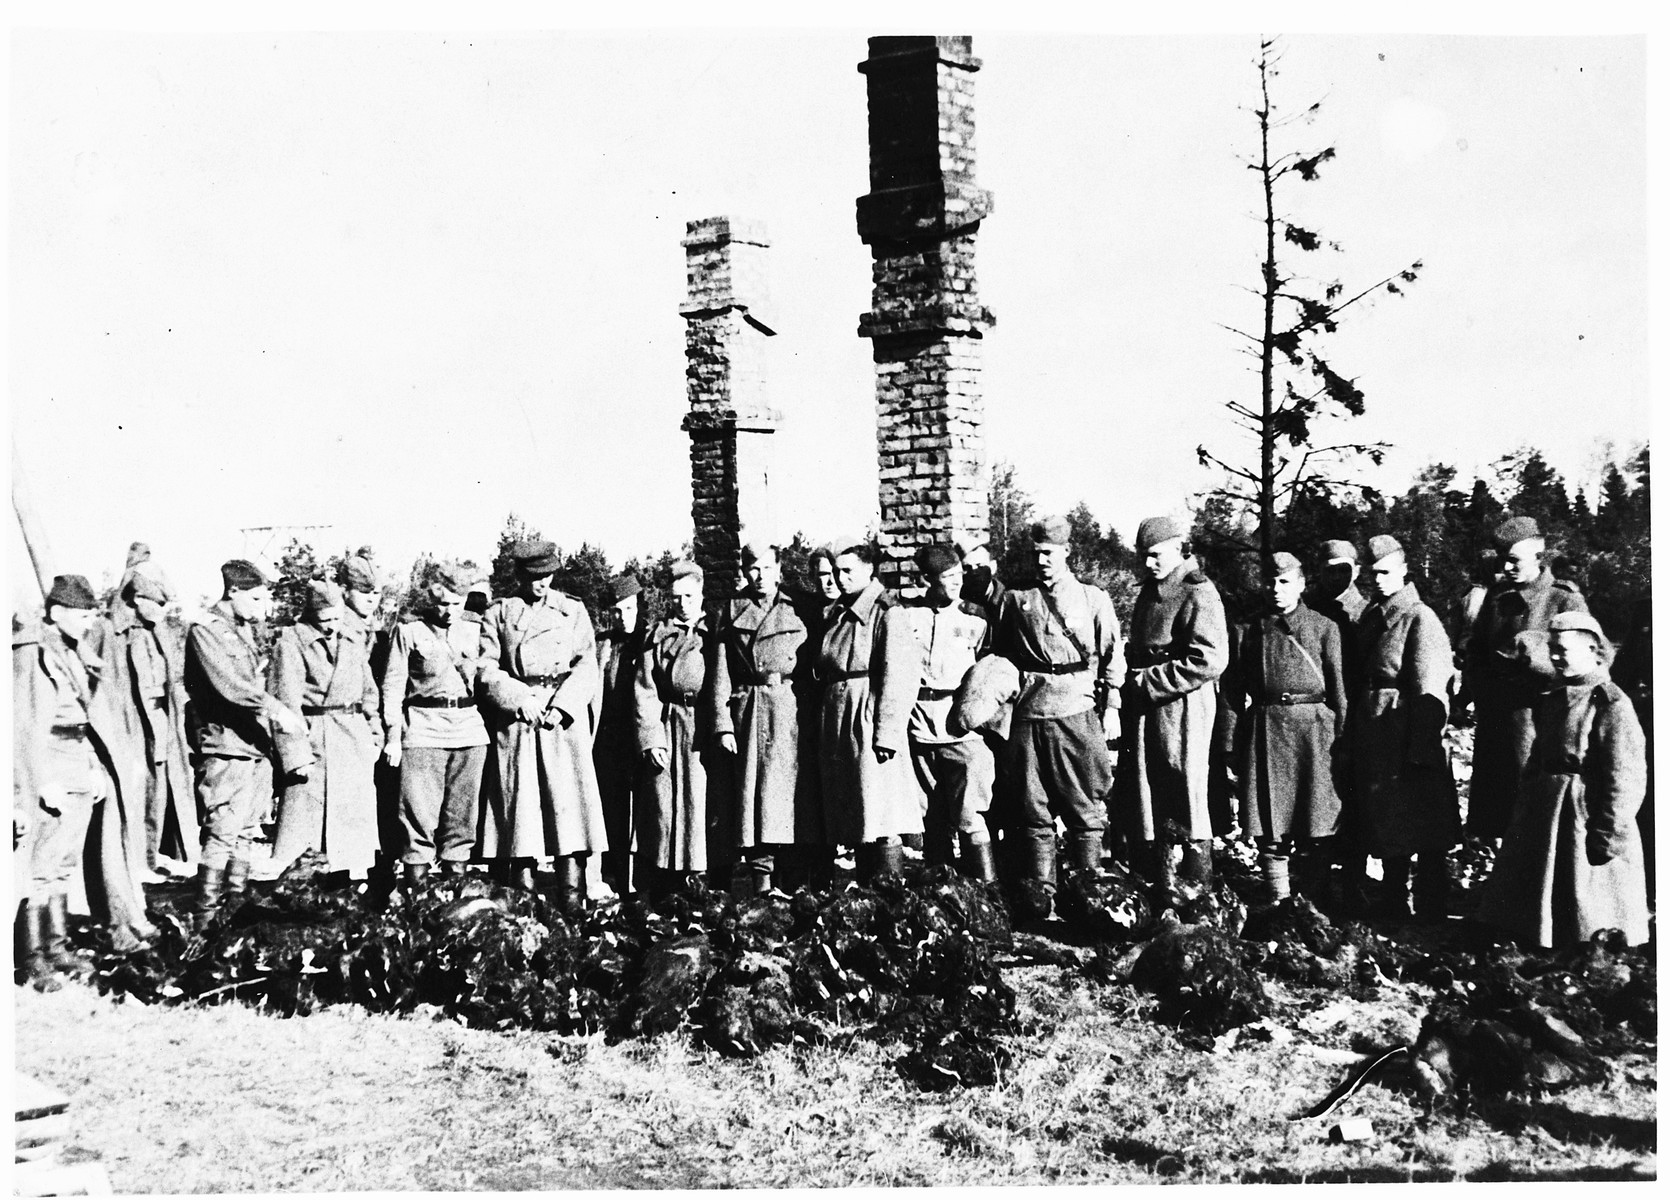 Soviet soldiers and war crimes investigators view the bodies of prisoners that were stacked on a pyre in the Klooga concentration camp.